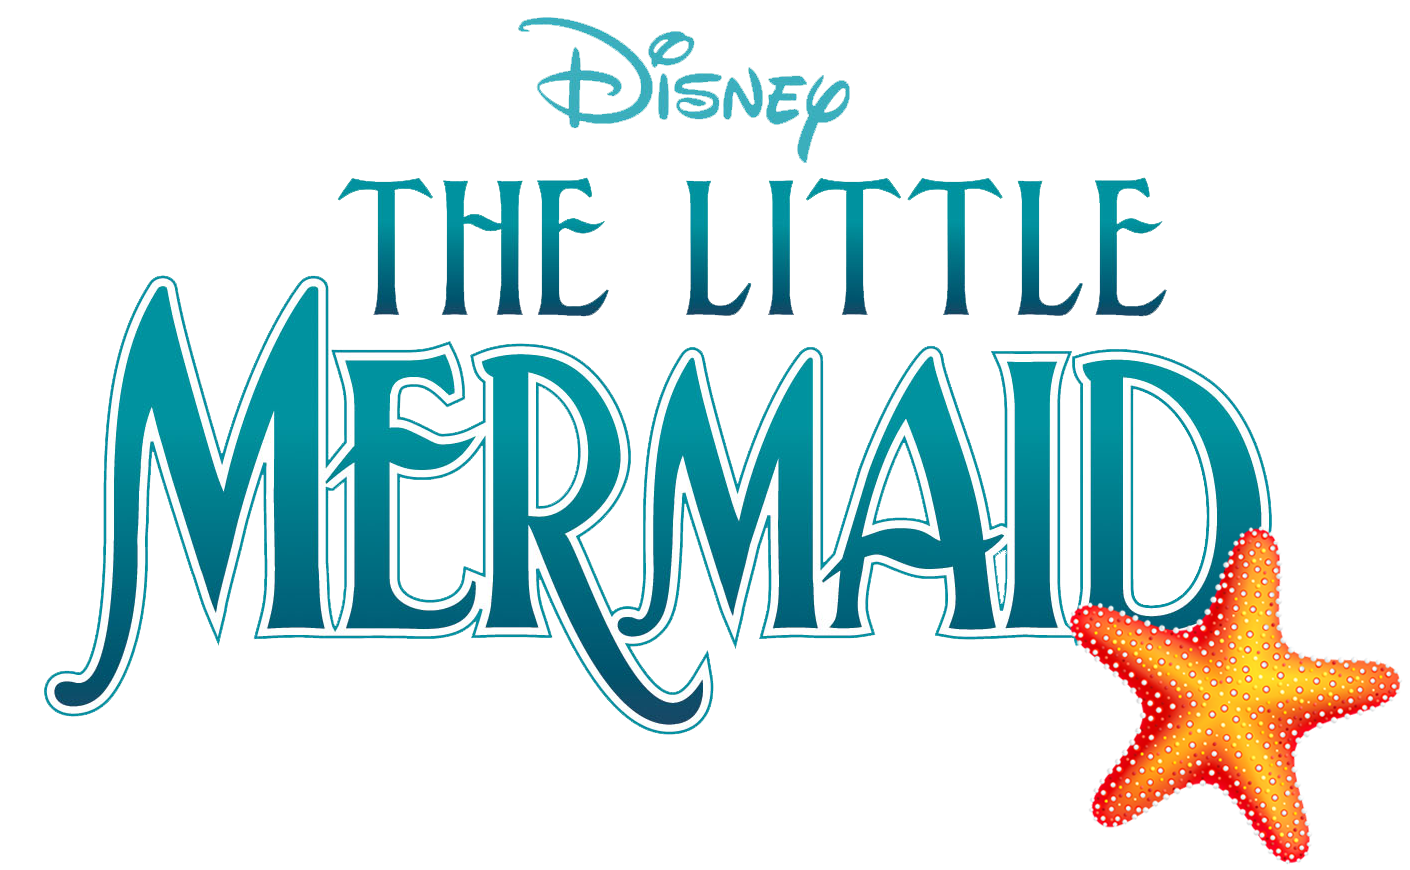 44 Little Mermaid Logo.png